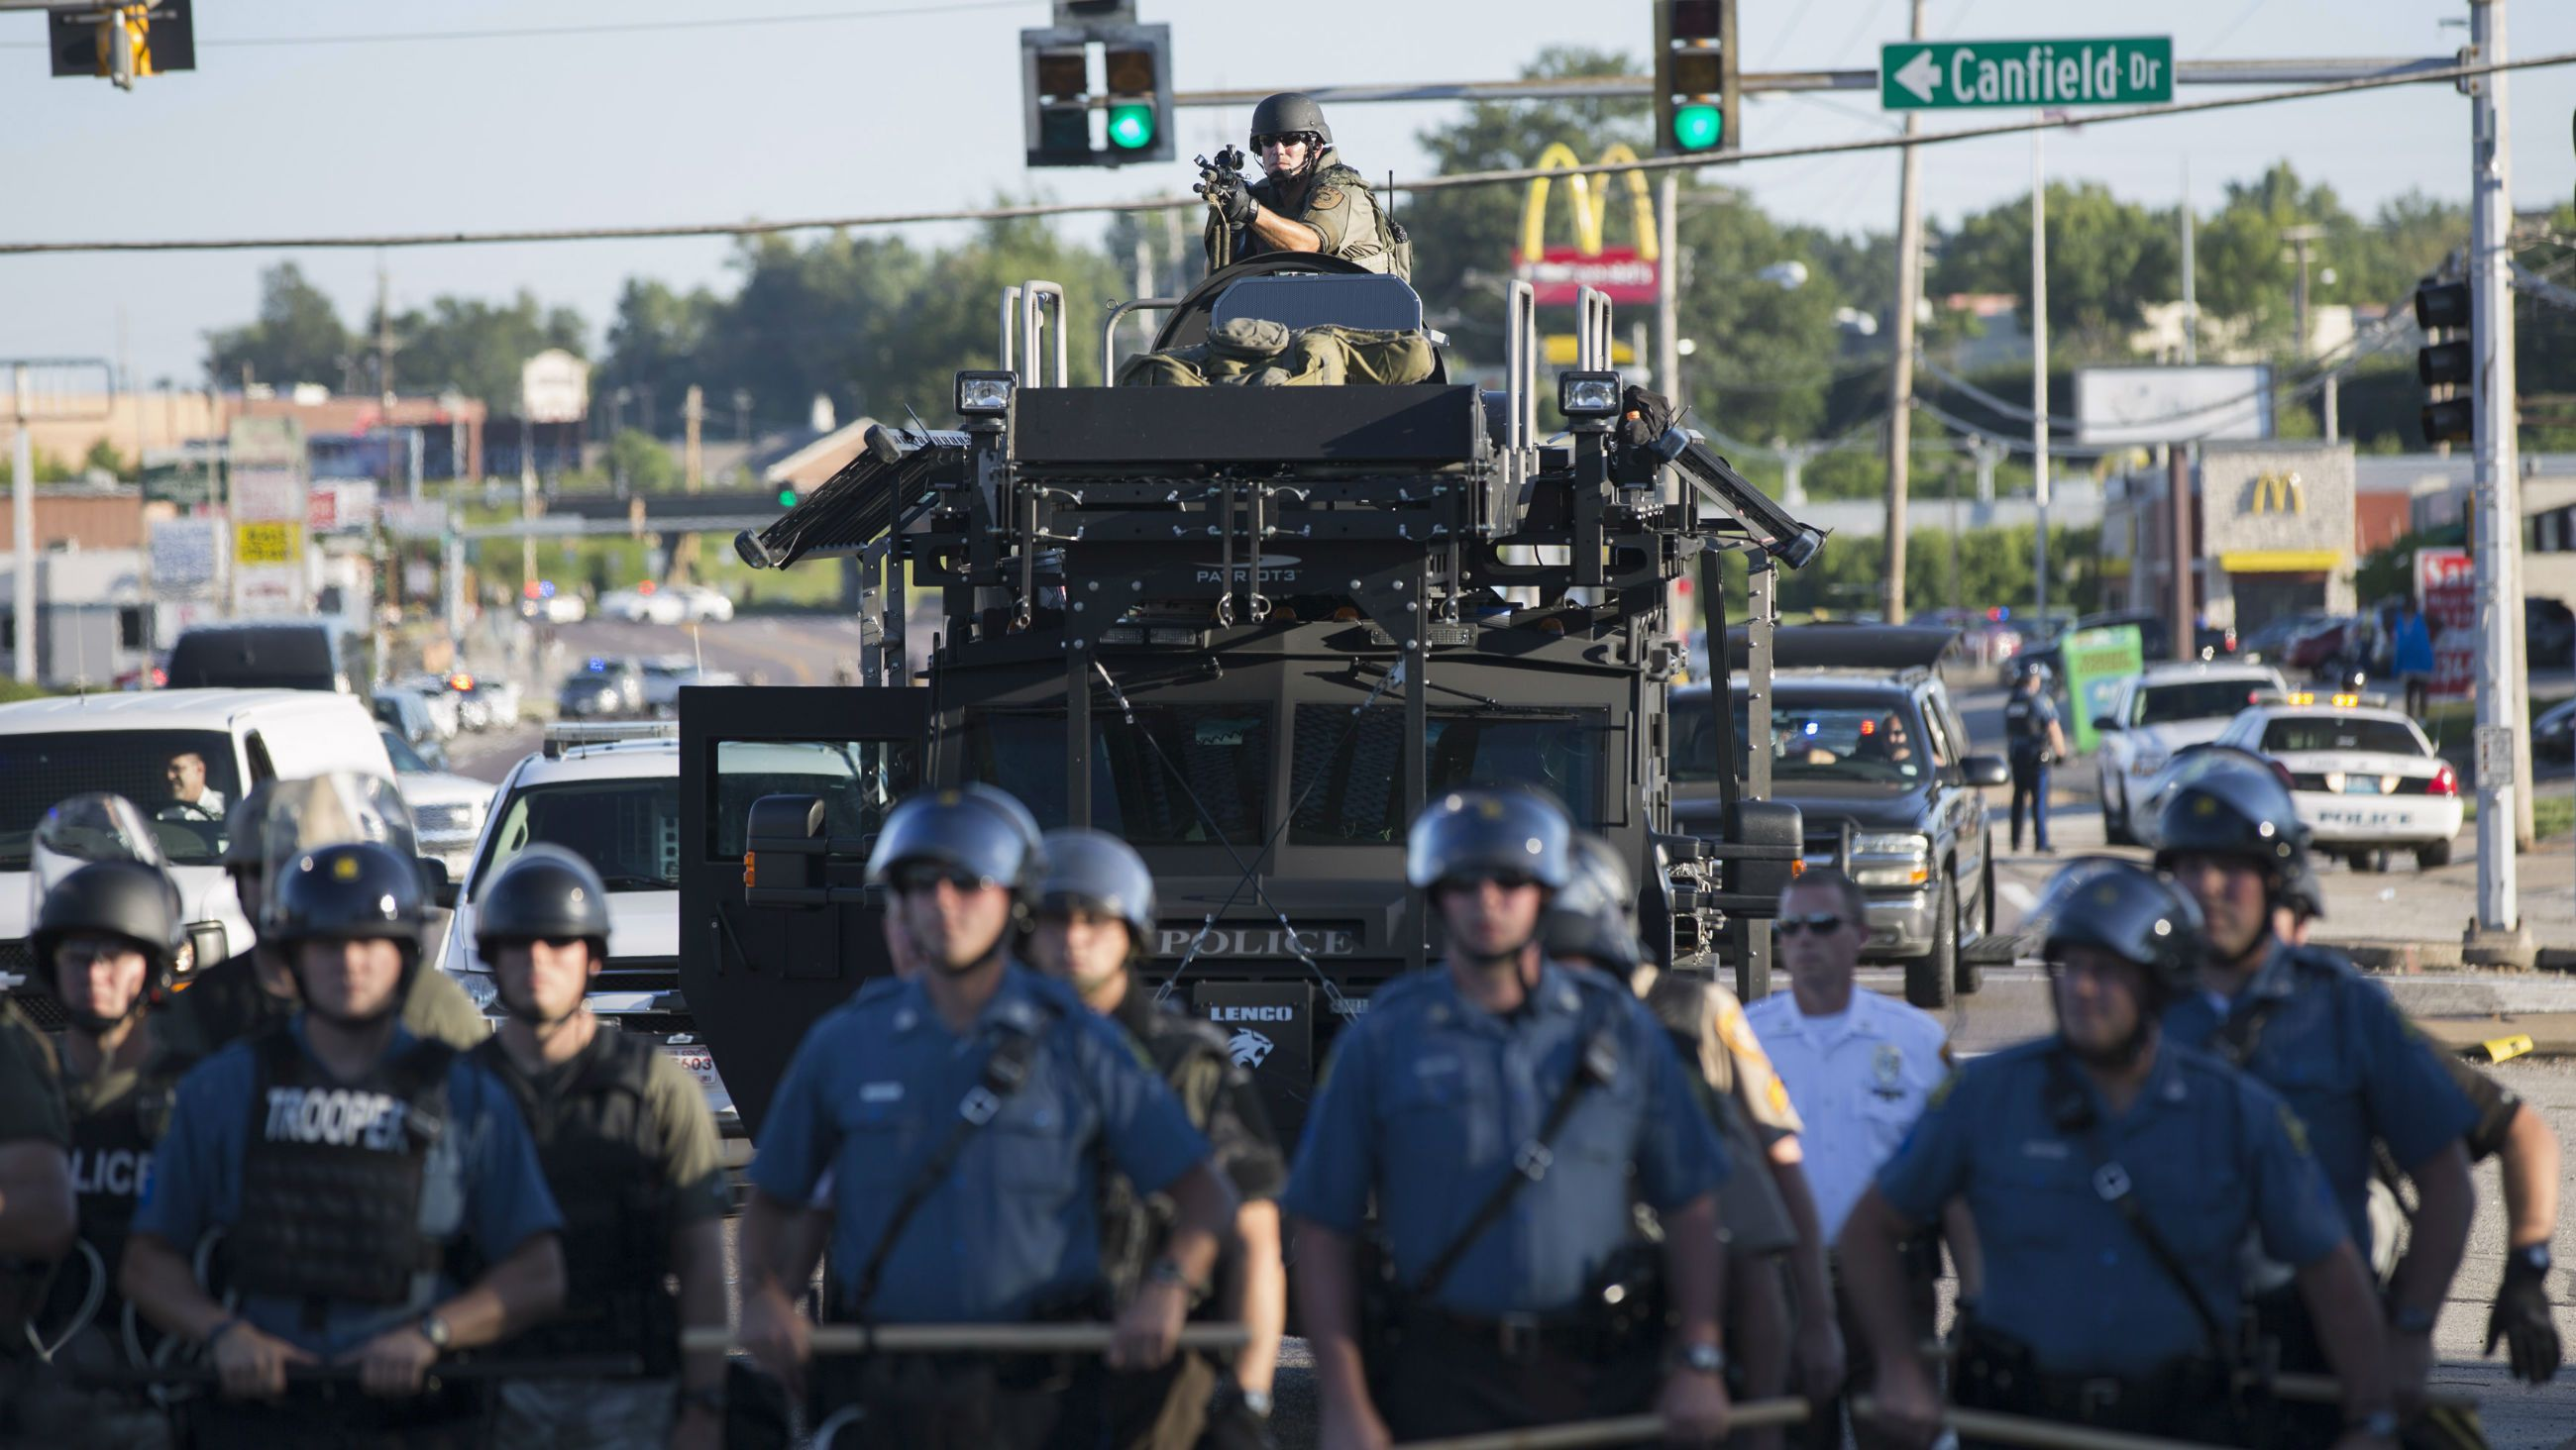 Riot police stand guard as demonstrators protest the shooting death of teenager Michael Brown in Ferguson, Missouri August 13, 2014. A McDonald's can be seen in the background.